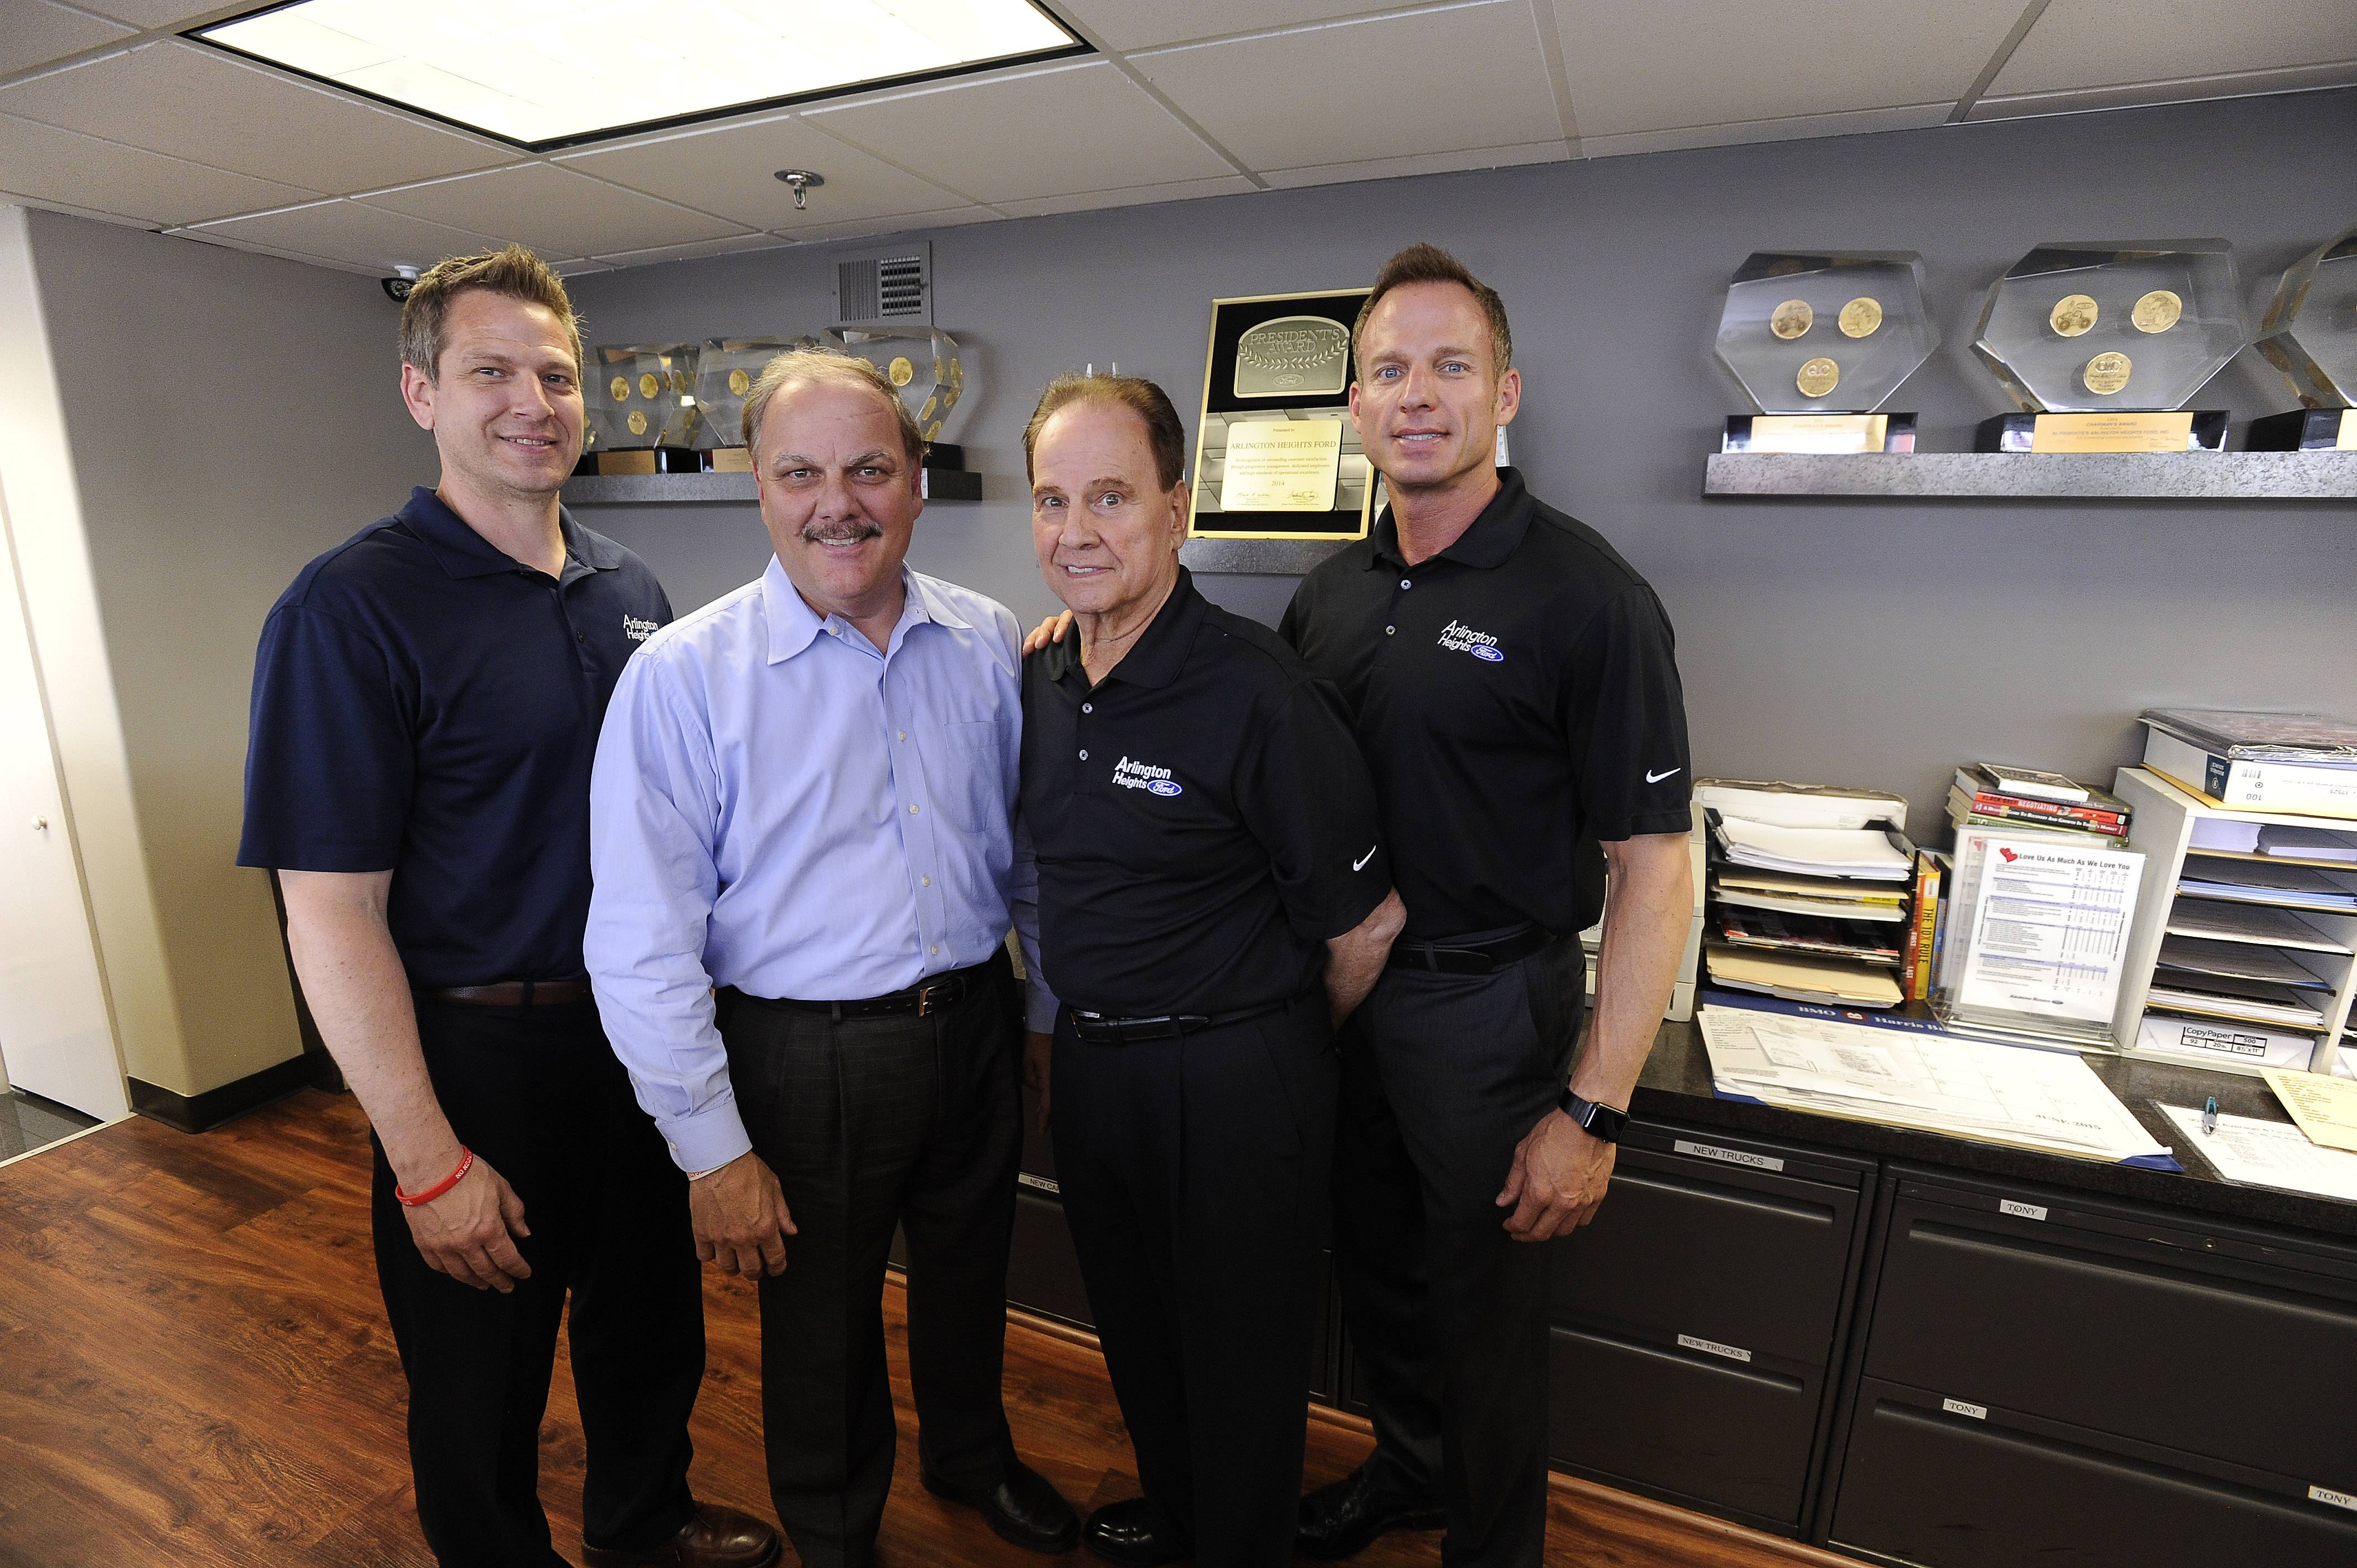 The Guido family owns Arlington Heights Ford. From left, Dave Tomczyk, controller; dealer operator and owners Tony Guido and his brother, John Guido Sr.; and John Guido Jr., general sales manager.